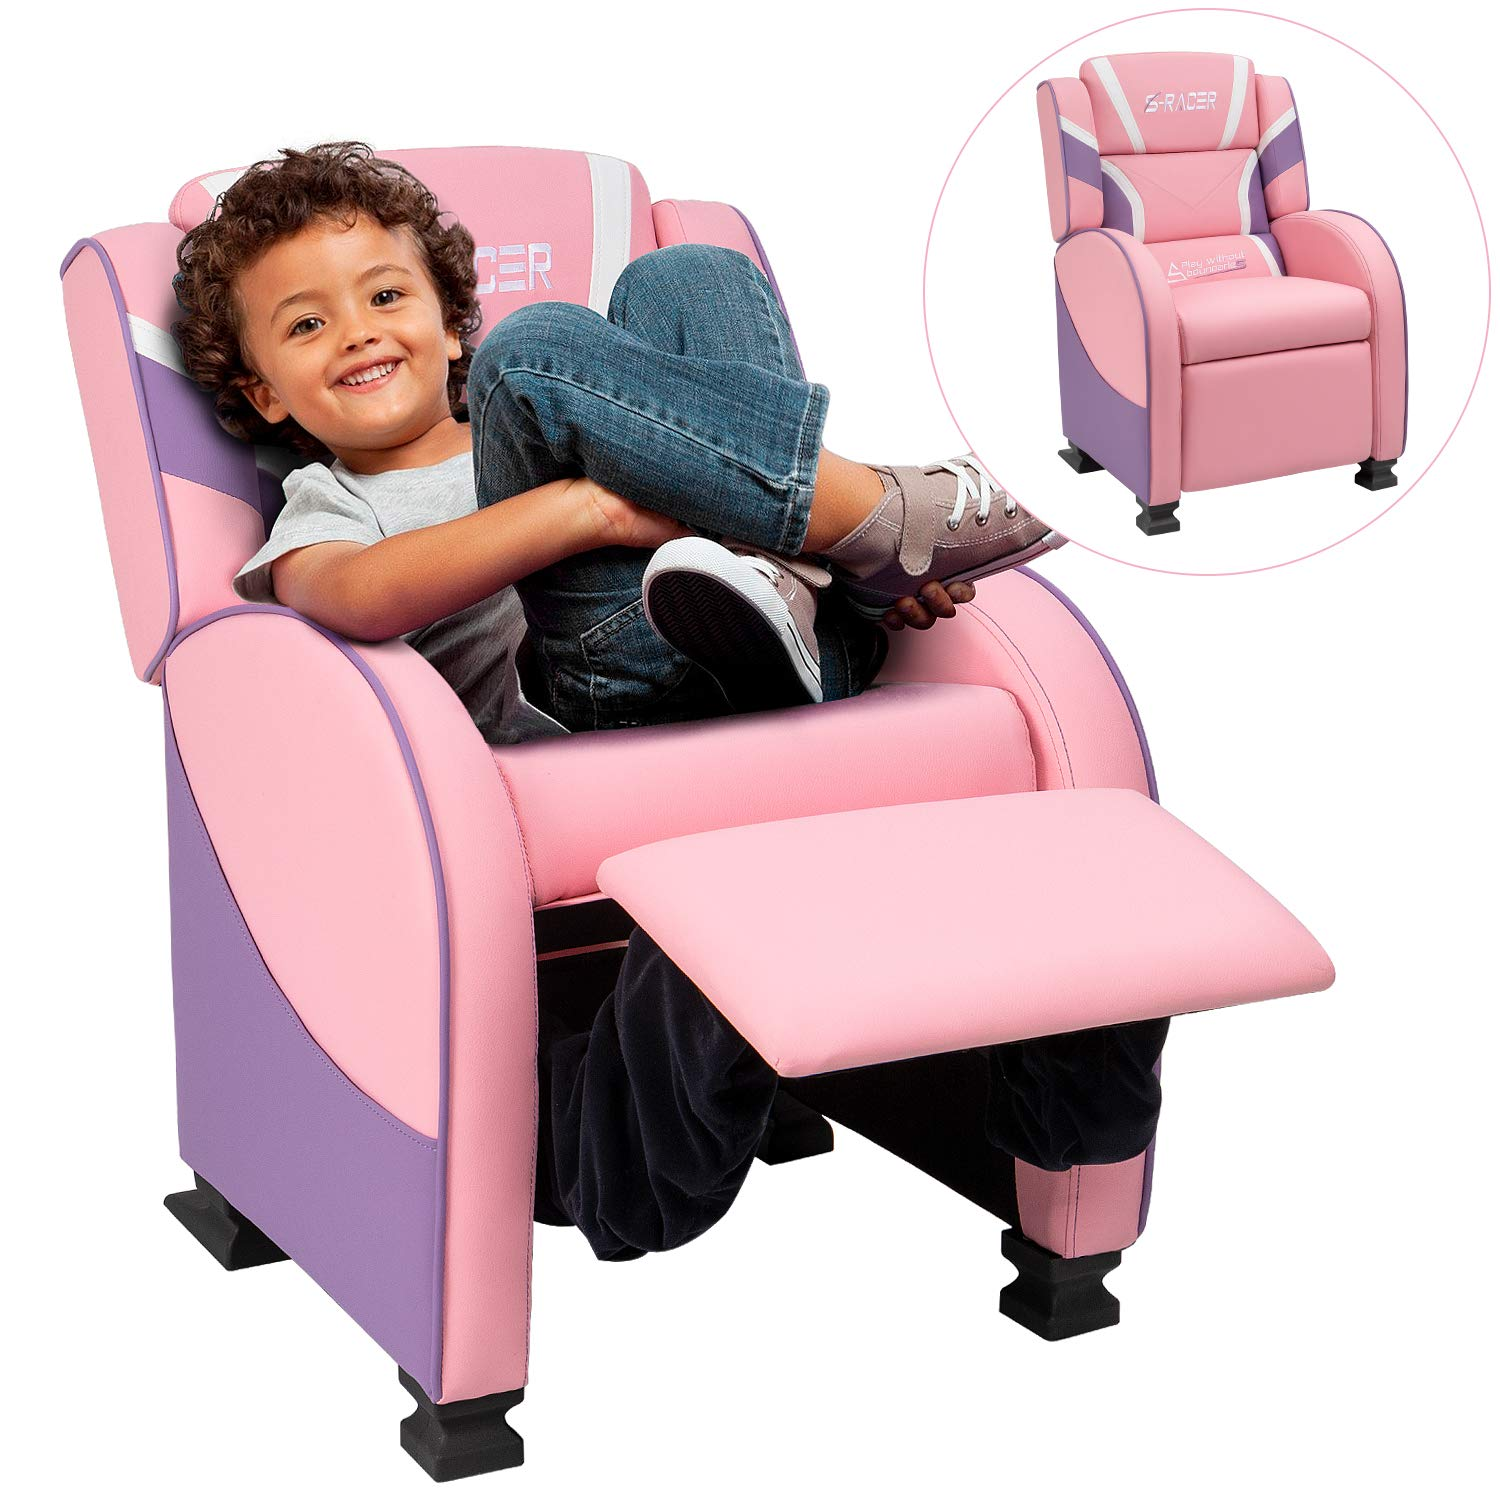 Homall Kids Recliner Chair, Lounge Furniture for Boys & Girls PU Leather Single Living Bed Room Chair Children Sofa (Pink) by Homall